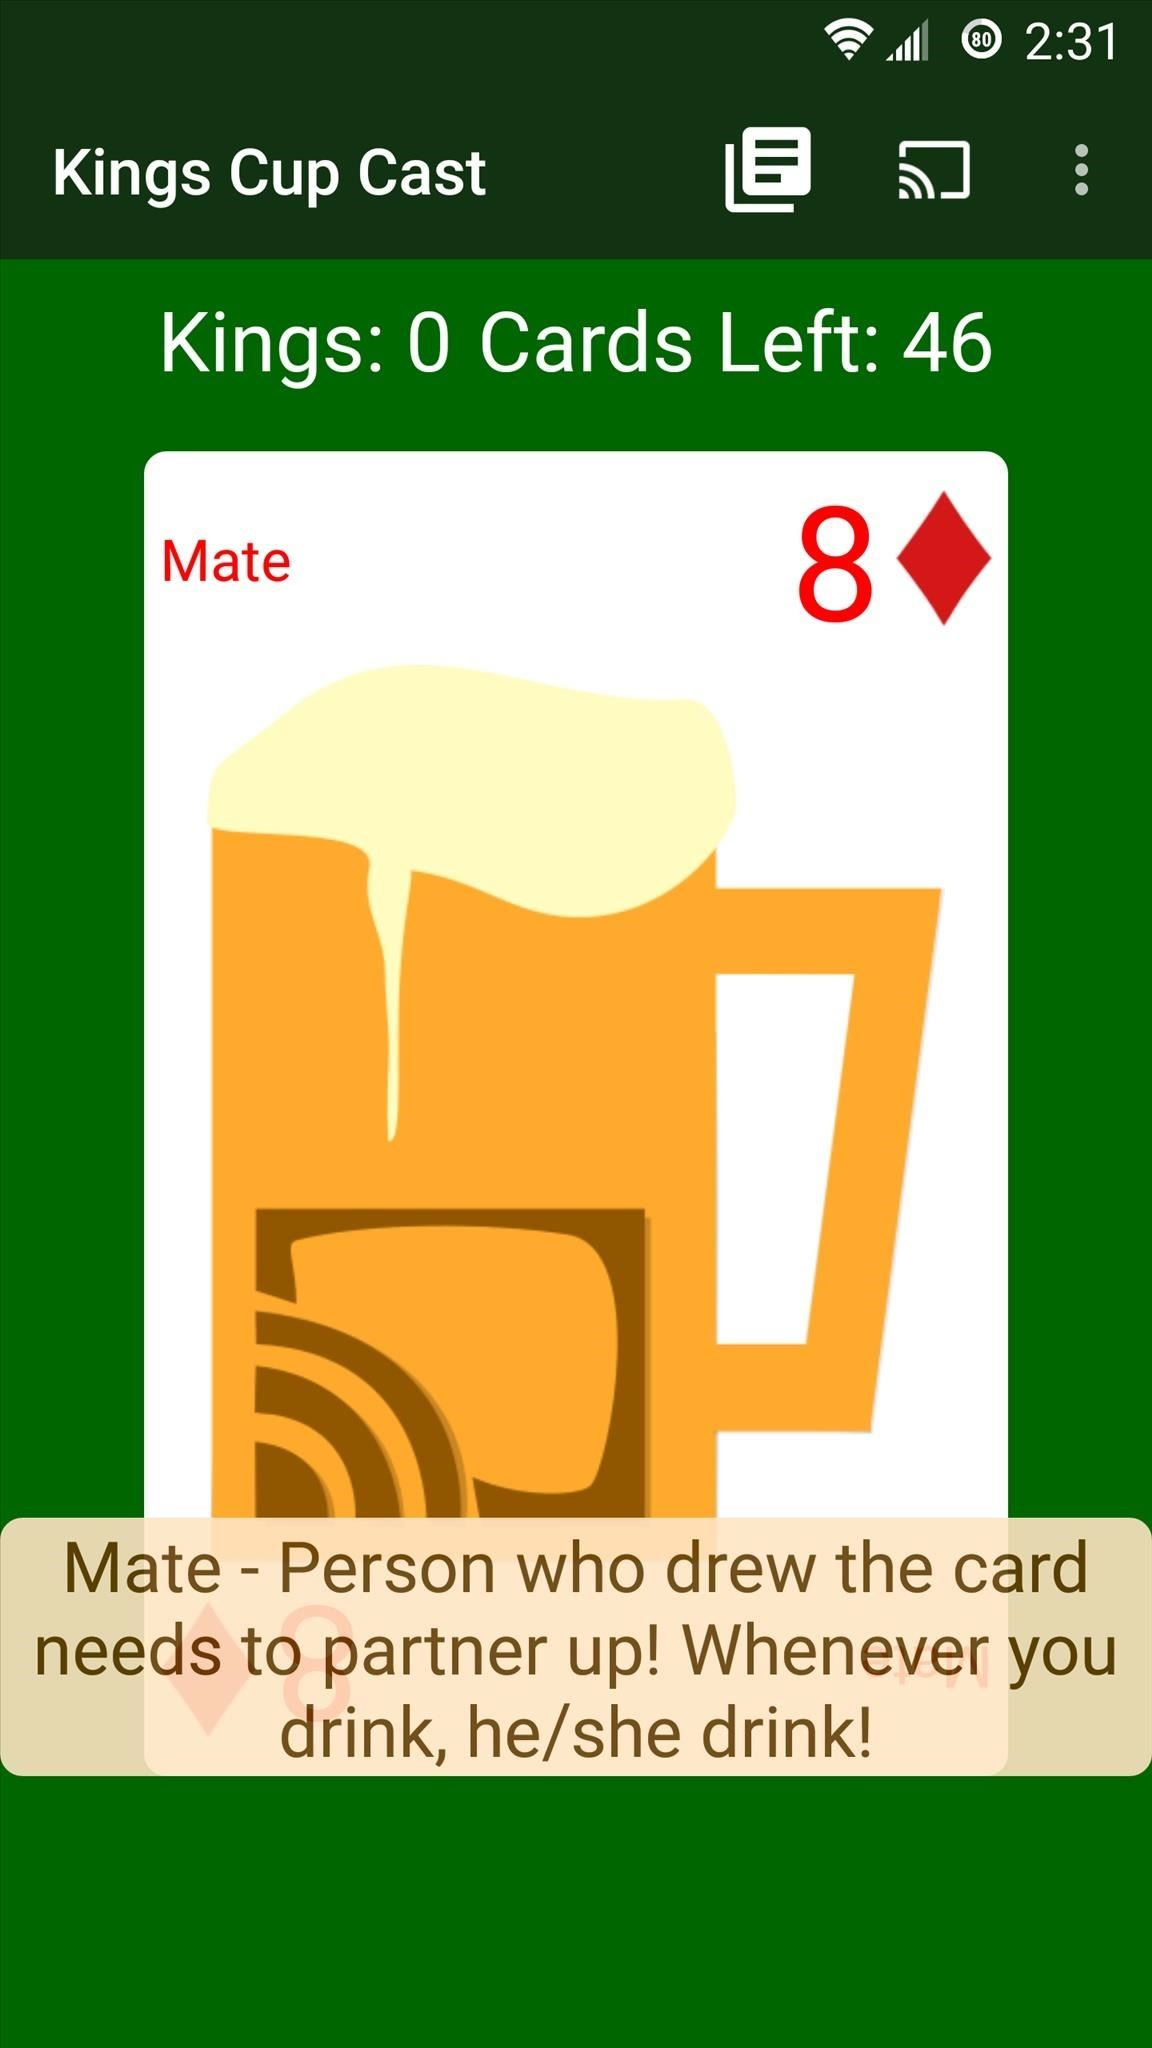 Drinking Games: Android Edition